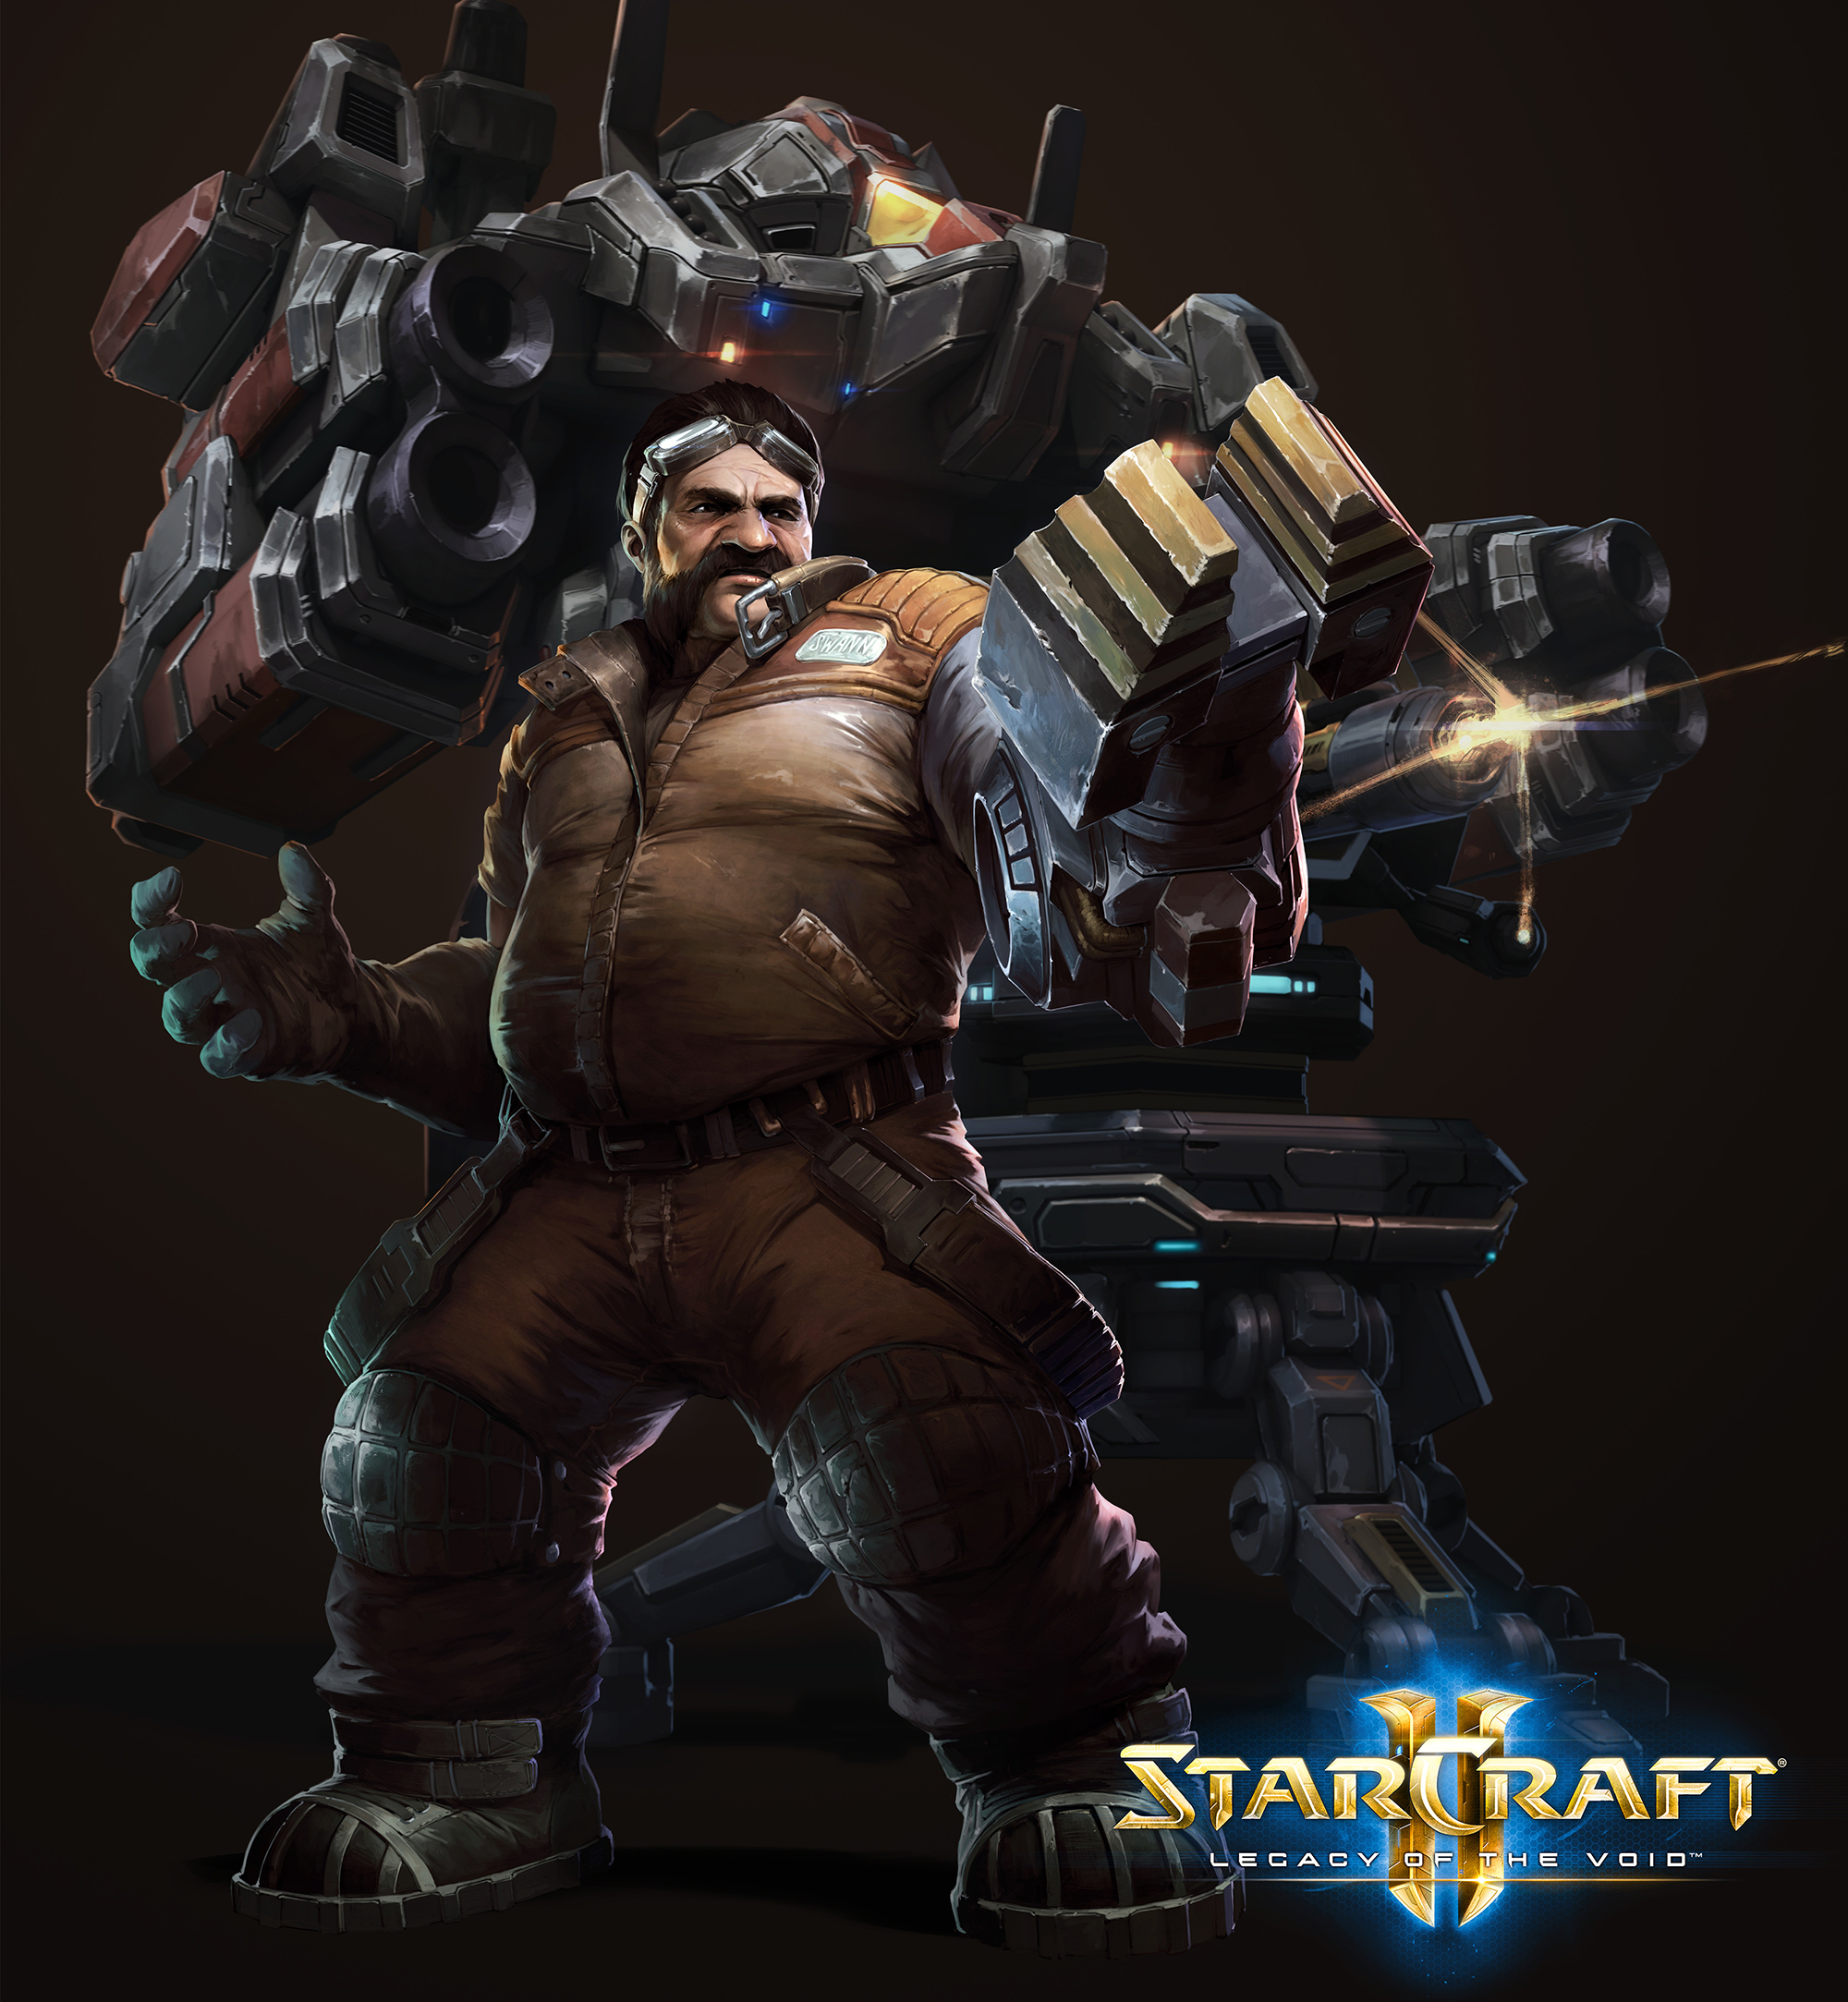 1446883557-starcraft-legacy-of-the-void-co-op-commander-swann